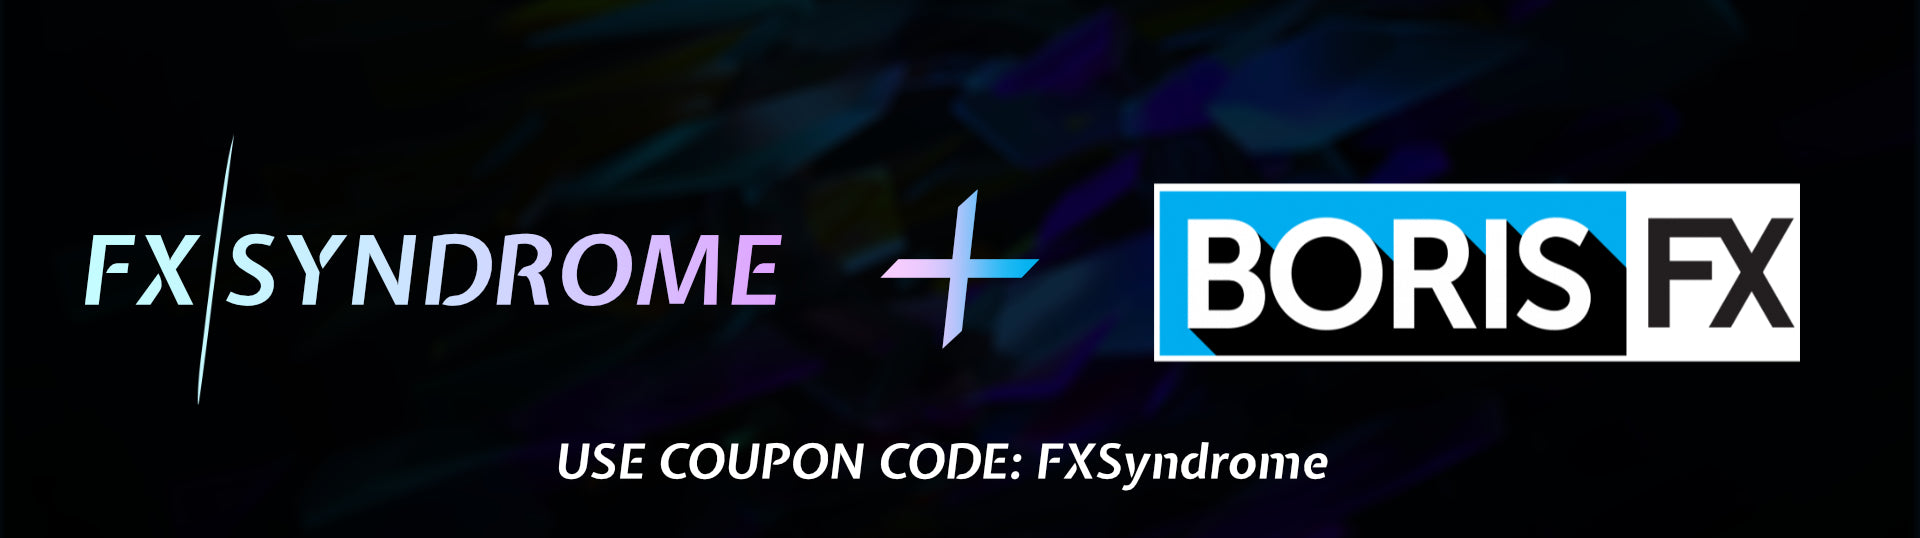 boris fx coupon code